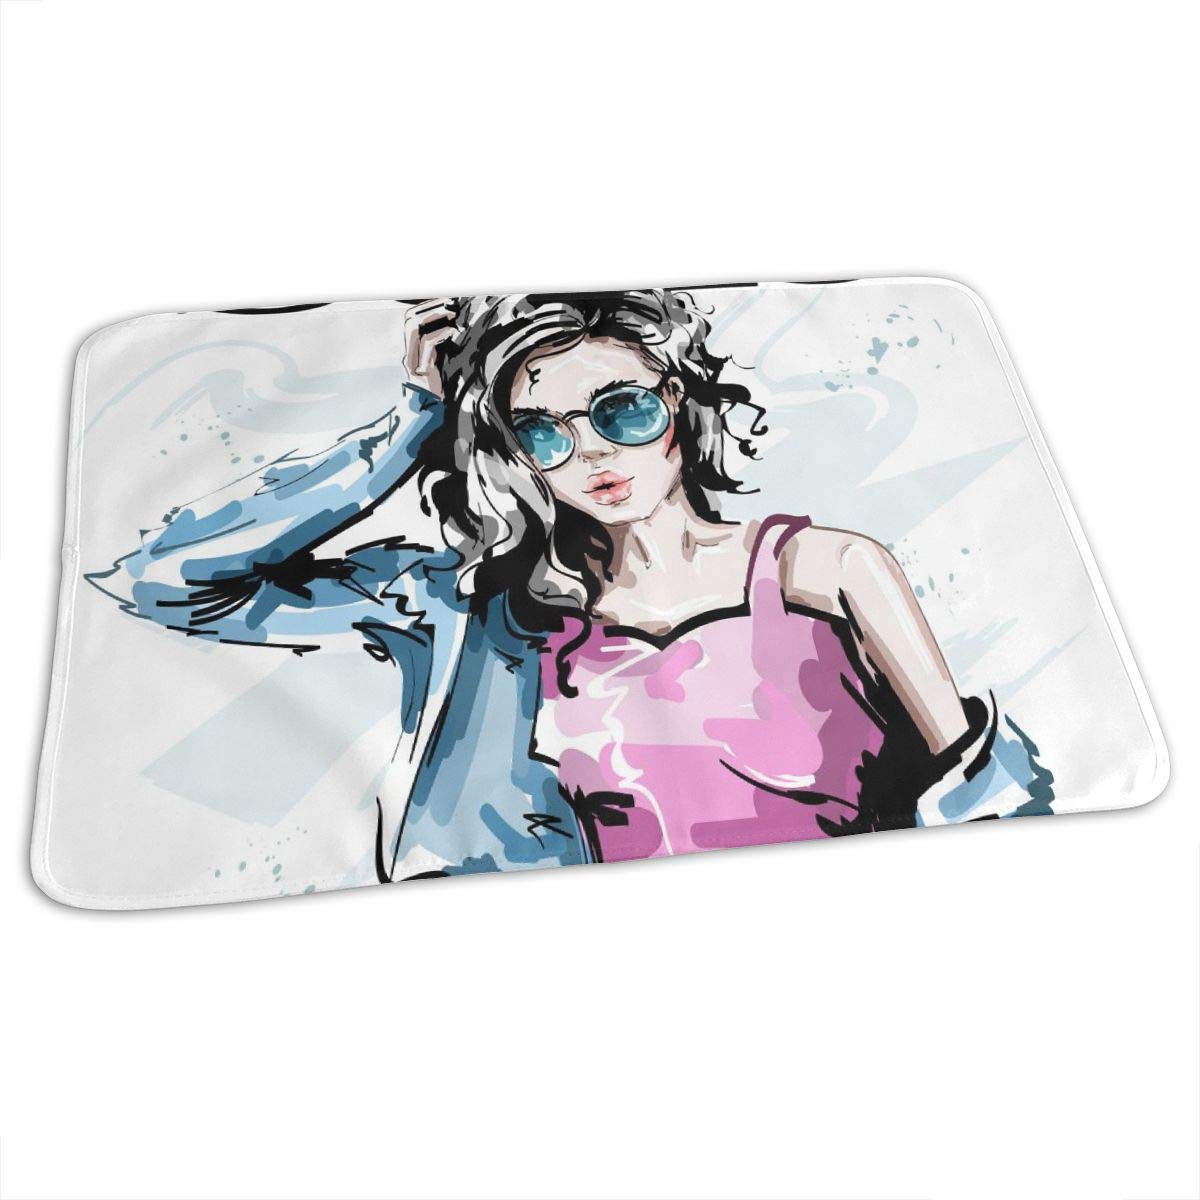 Osvbs Lovely Baby Reusable Waterproof Portable Fashionable Elegant Girl in Jeans Jacket - My Style Changing Pad Home Travel 27.5''x19.7'' by Osvbs